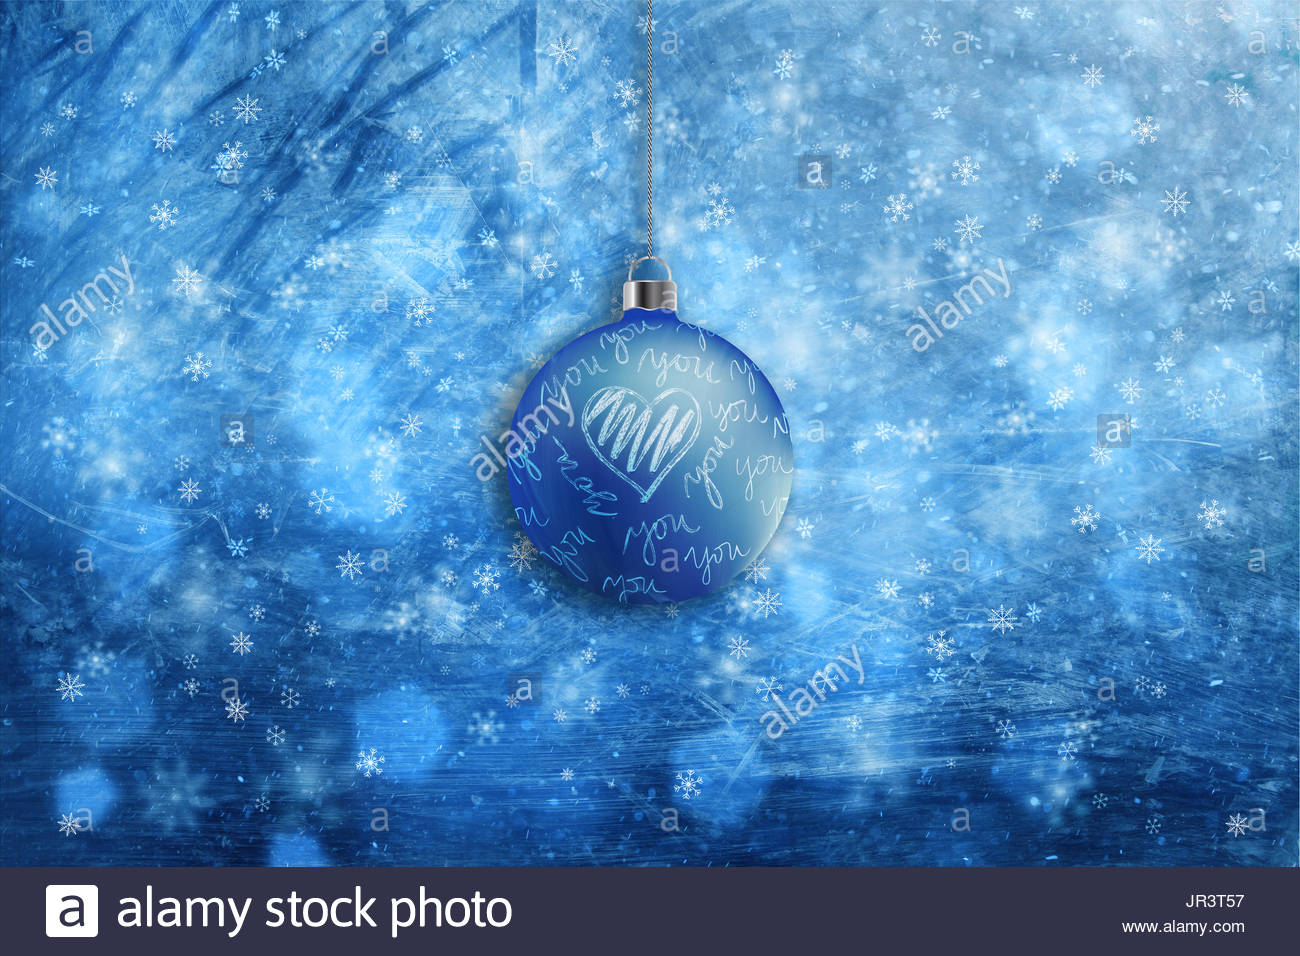 artistic blue color bokeh with love symbols decorative christmas bulb background blurry christmas and new year greeting card illustration background